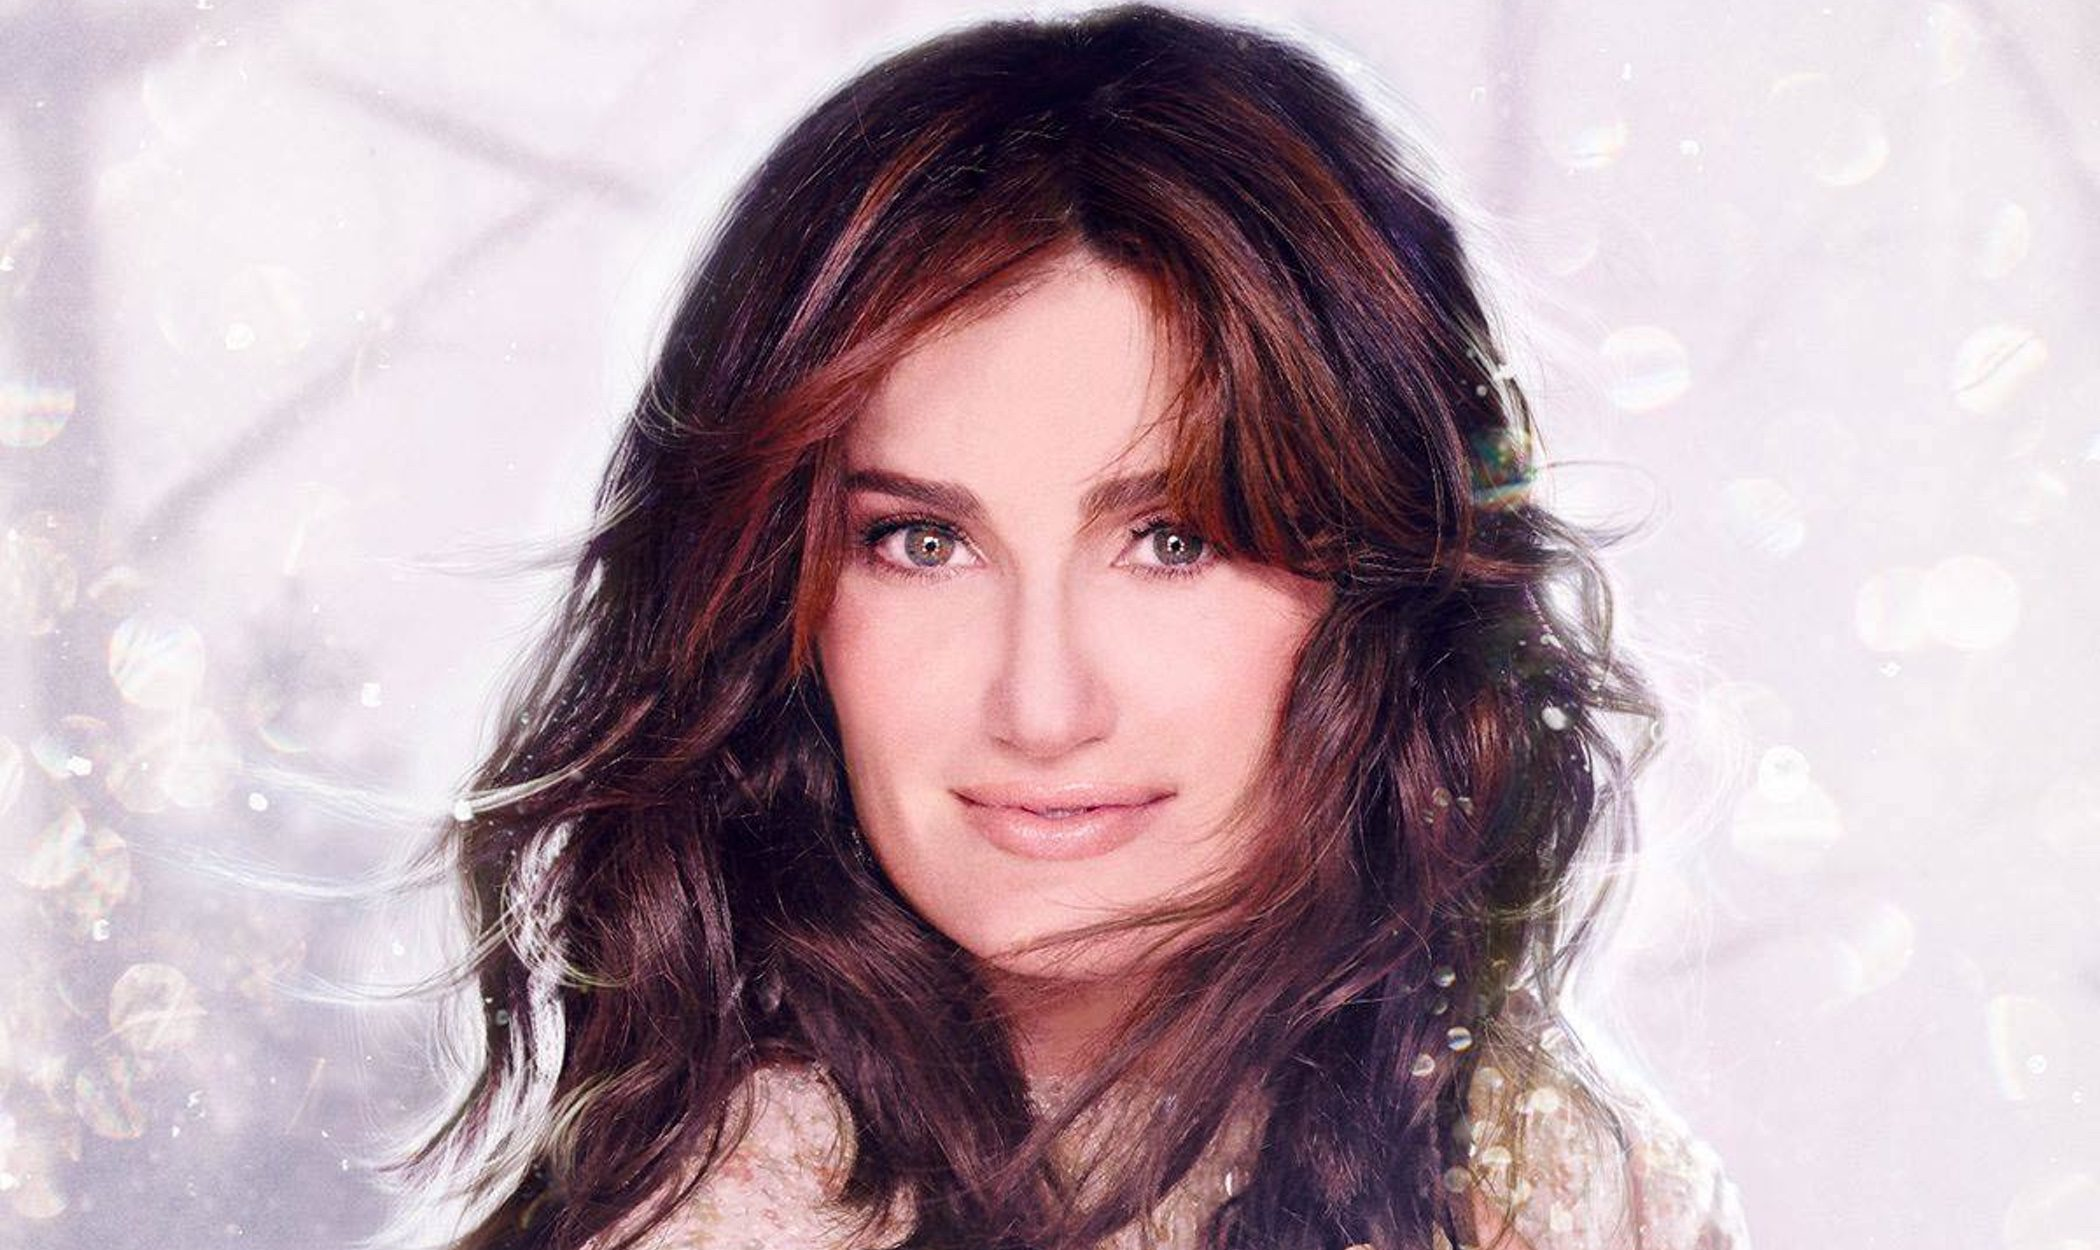 Idina Menzel lanza su primer álbum navideño: 'Holiday wishes'